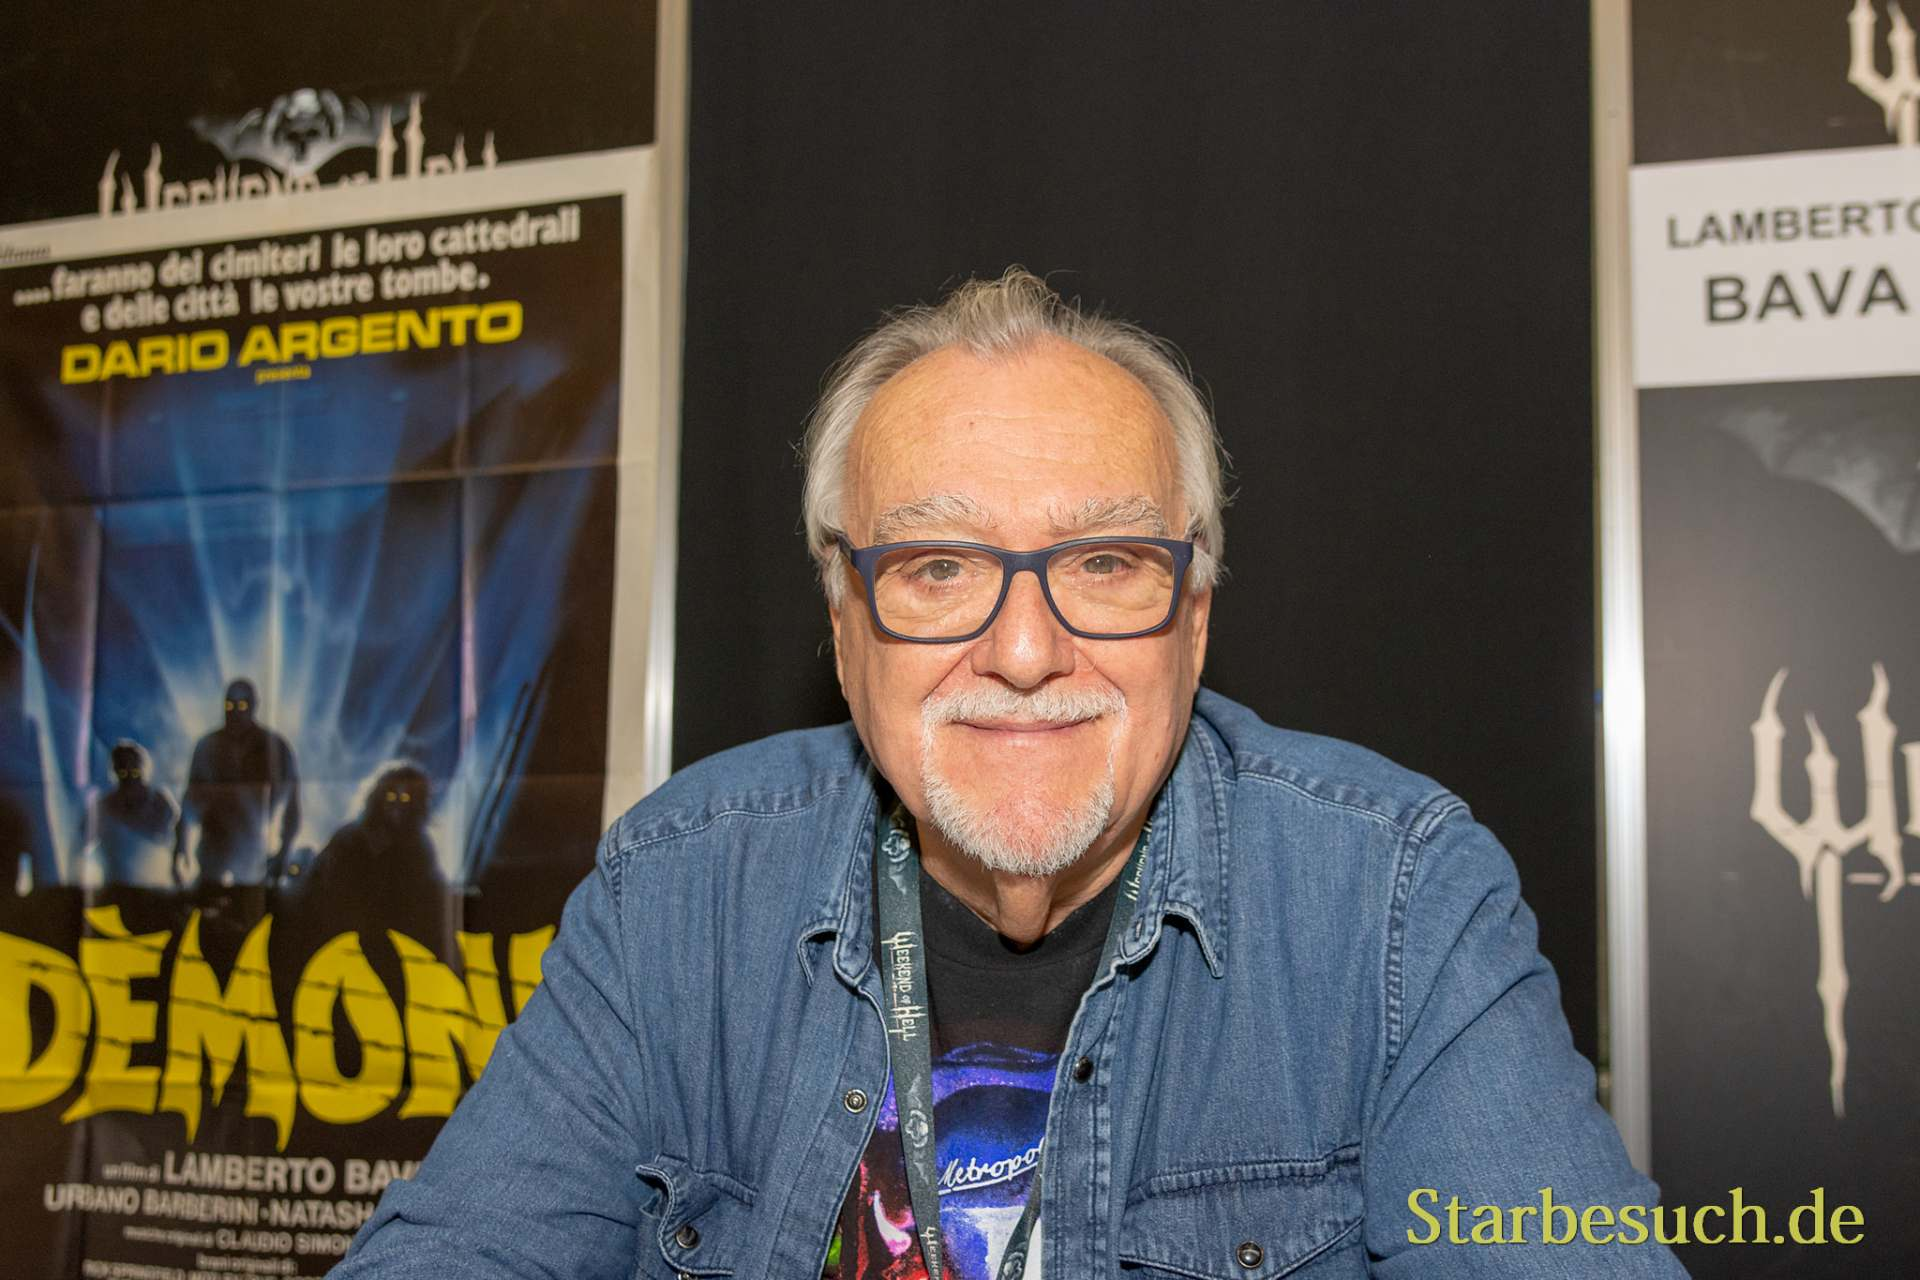 DORTMUND, GERMANY - November 3rd 2018: Lamberto Bava at Weekend of Hell 2018